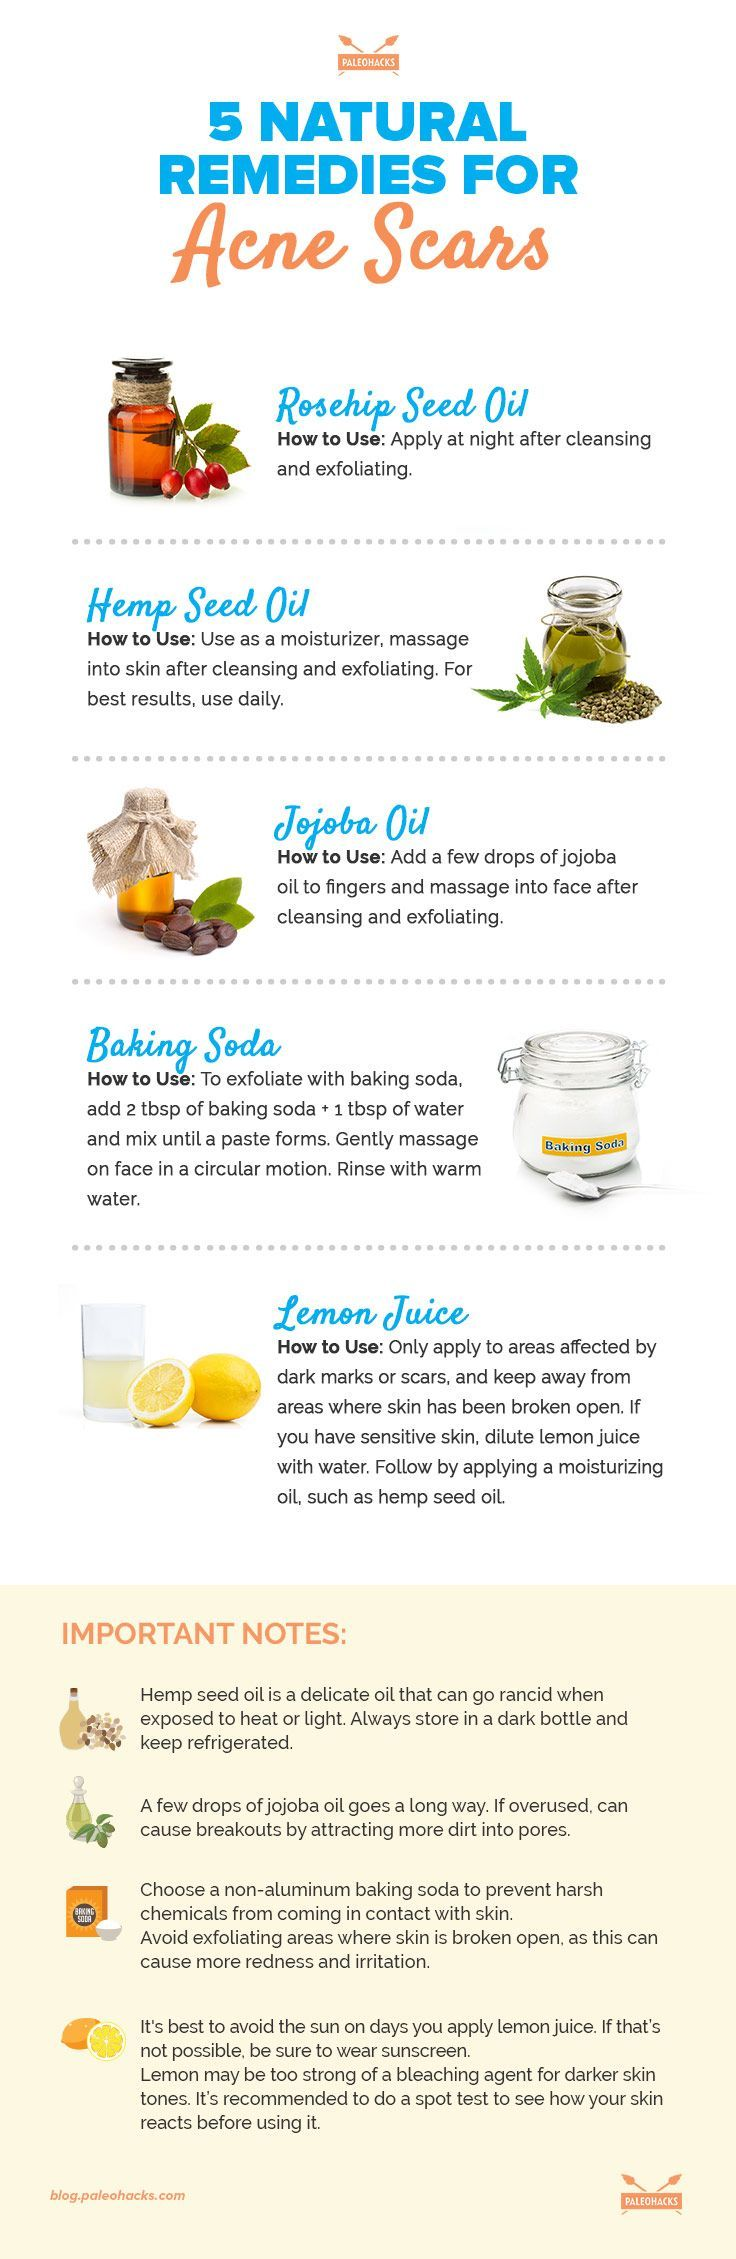 How to get rid of acne asap